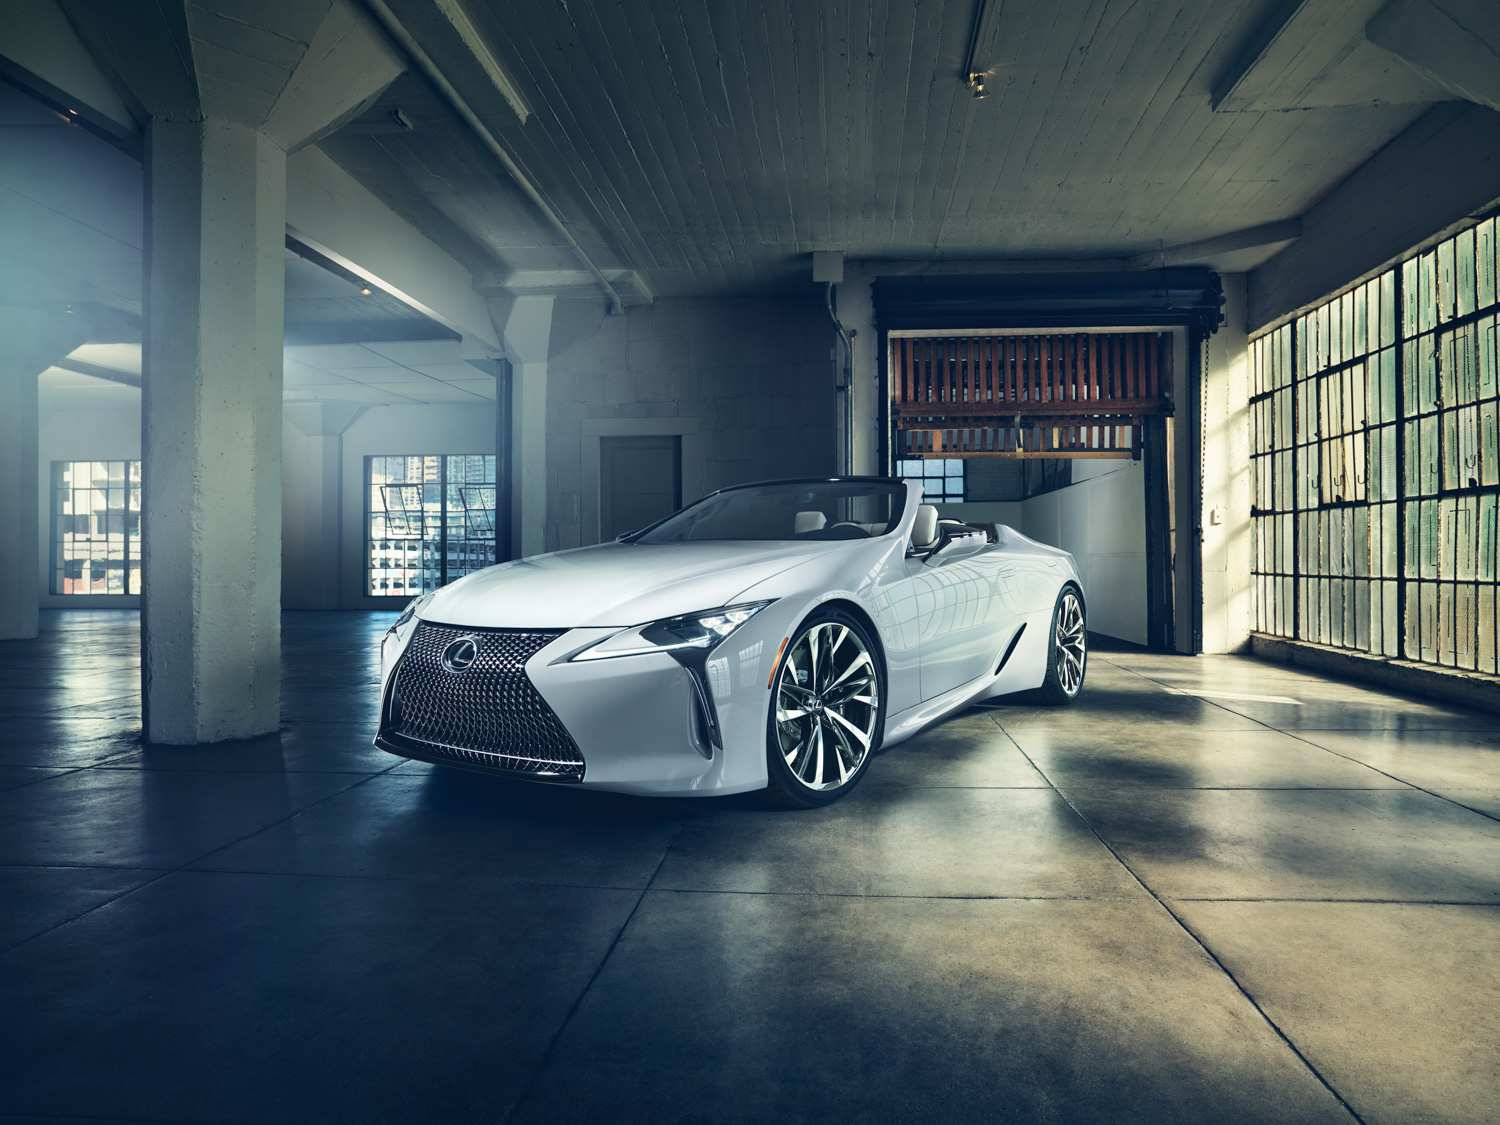 93 All New 2020 Lexus Lf Lc 2 Price And Release Date